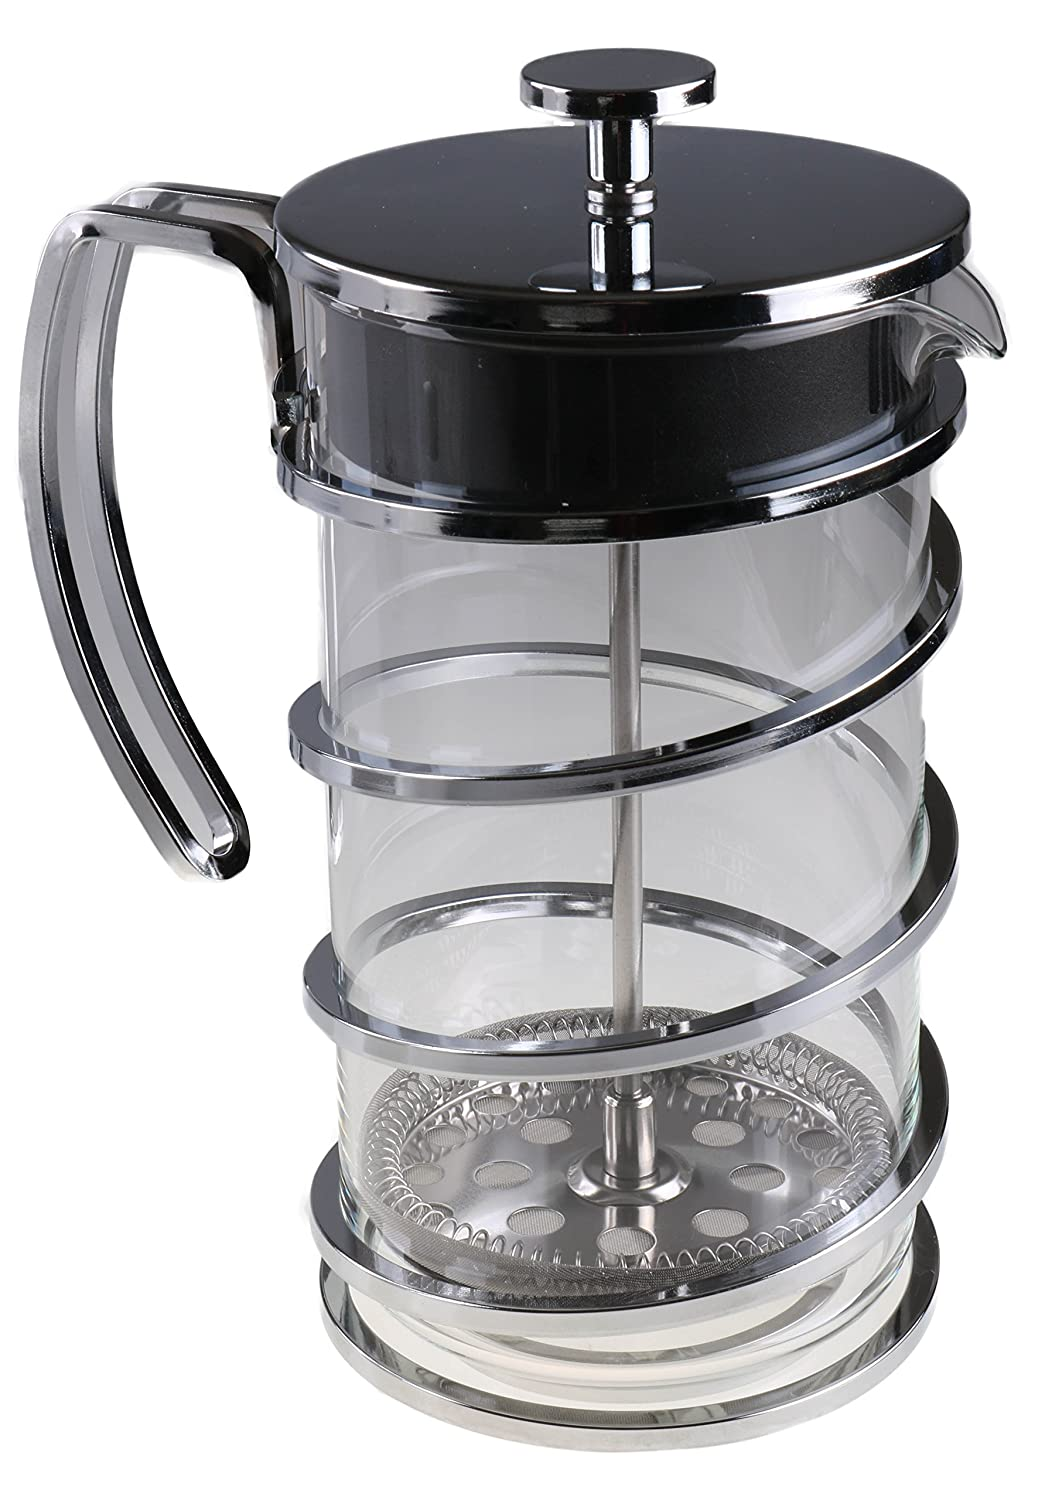 Gourmet 1 Liter Silver Colored French Press Coffee Brewer with Spiral Design Clever Chef